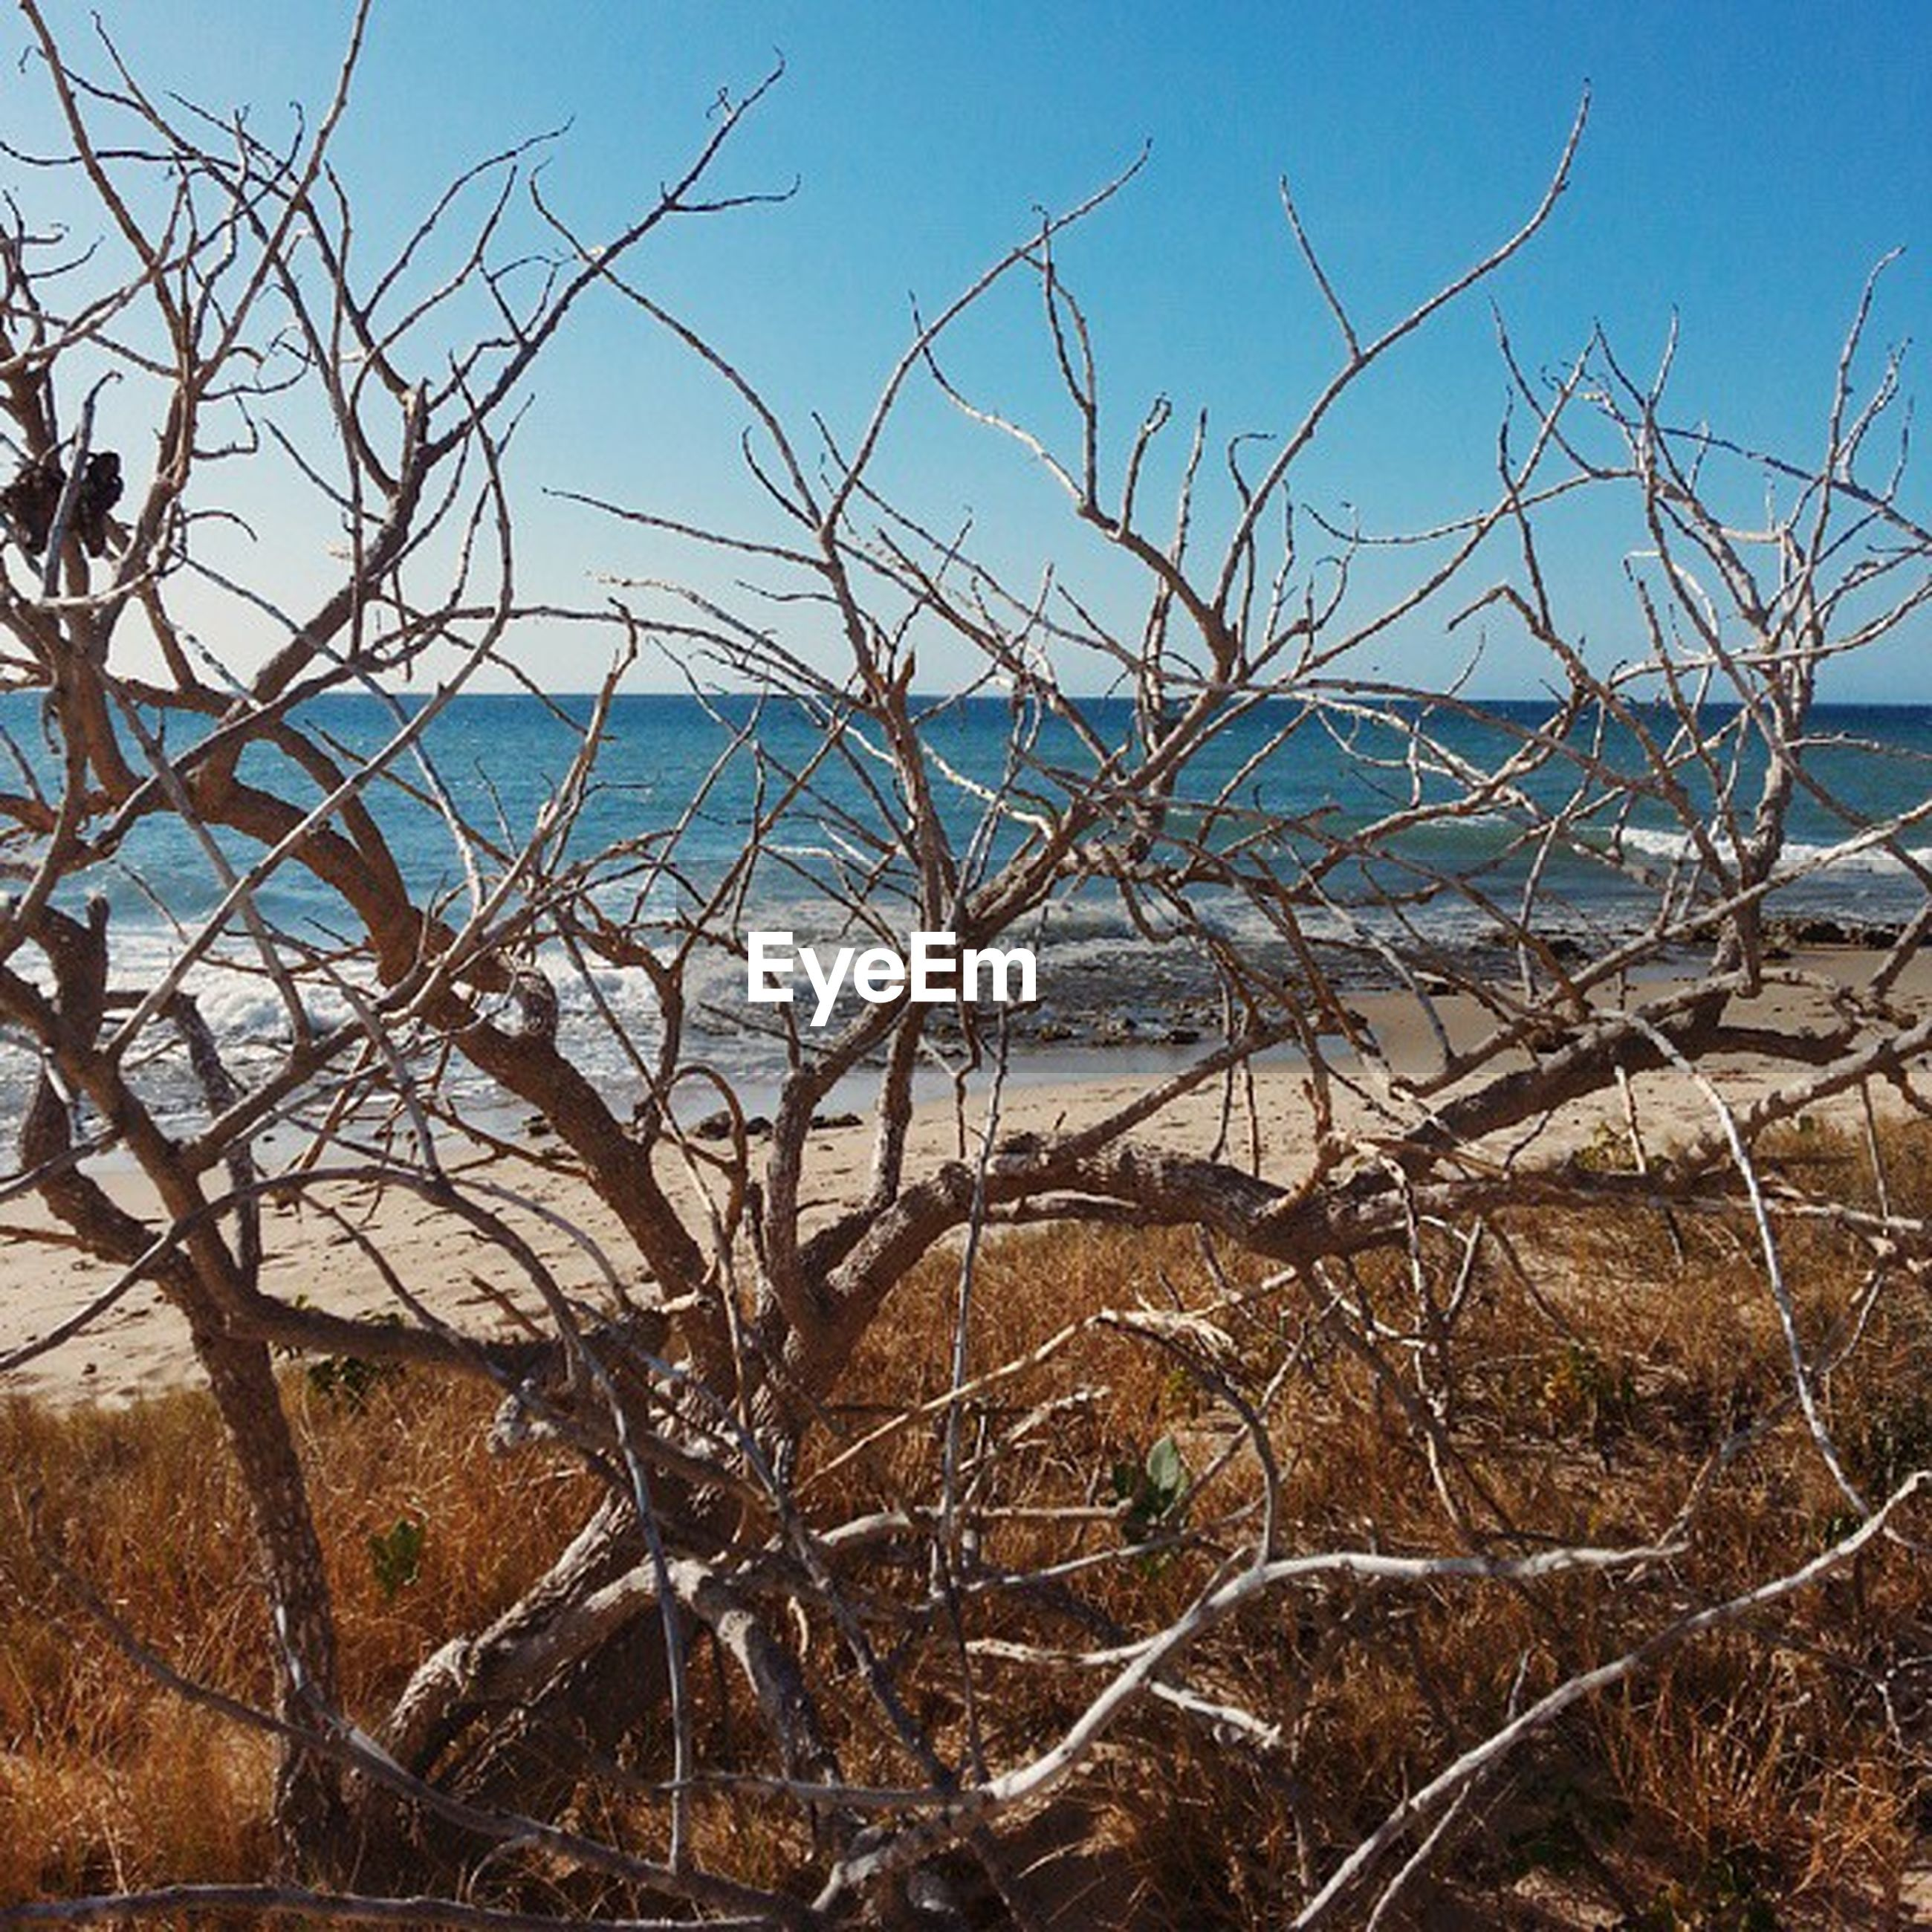 bare tree, branch, tree, clear sky, sky, dead plant, dry, nature, field, tranquility, landscape, day, no people, outdoors, tranquil scene, dried plant, wood - material, sunlight, blue, scenics